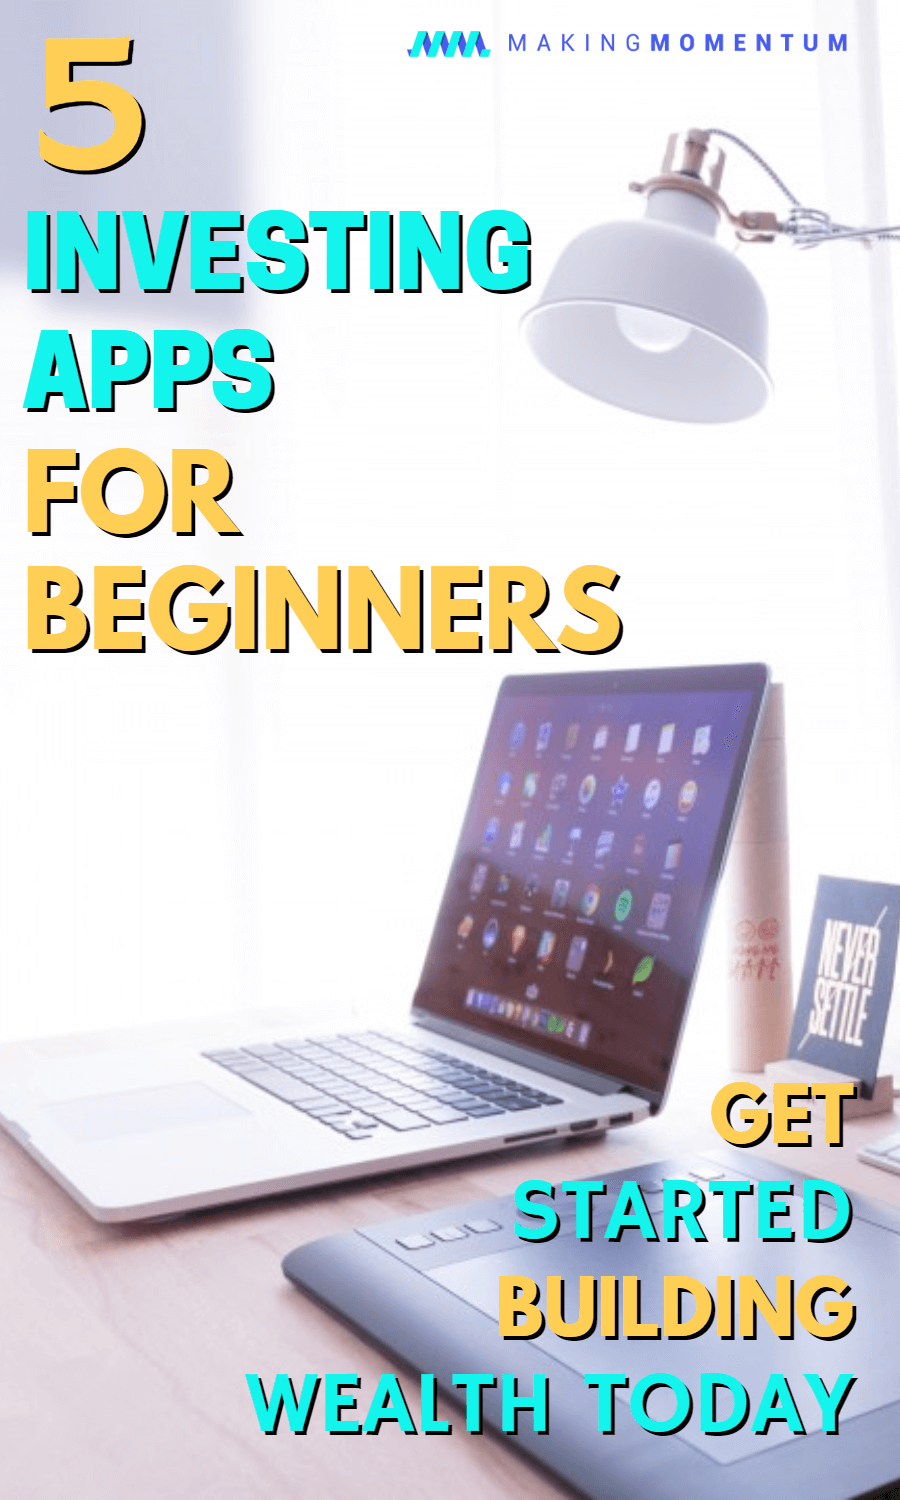 Investing Apps For Beginners, Compound Interest & Getting